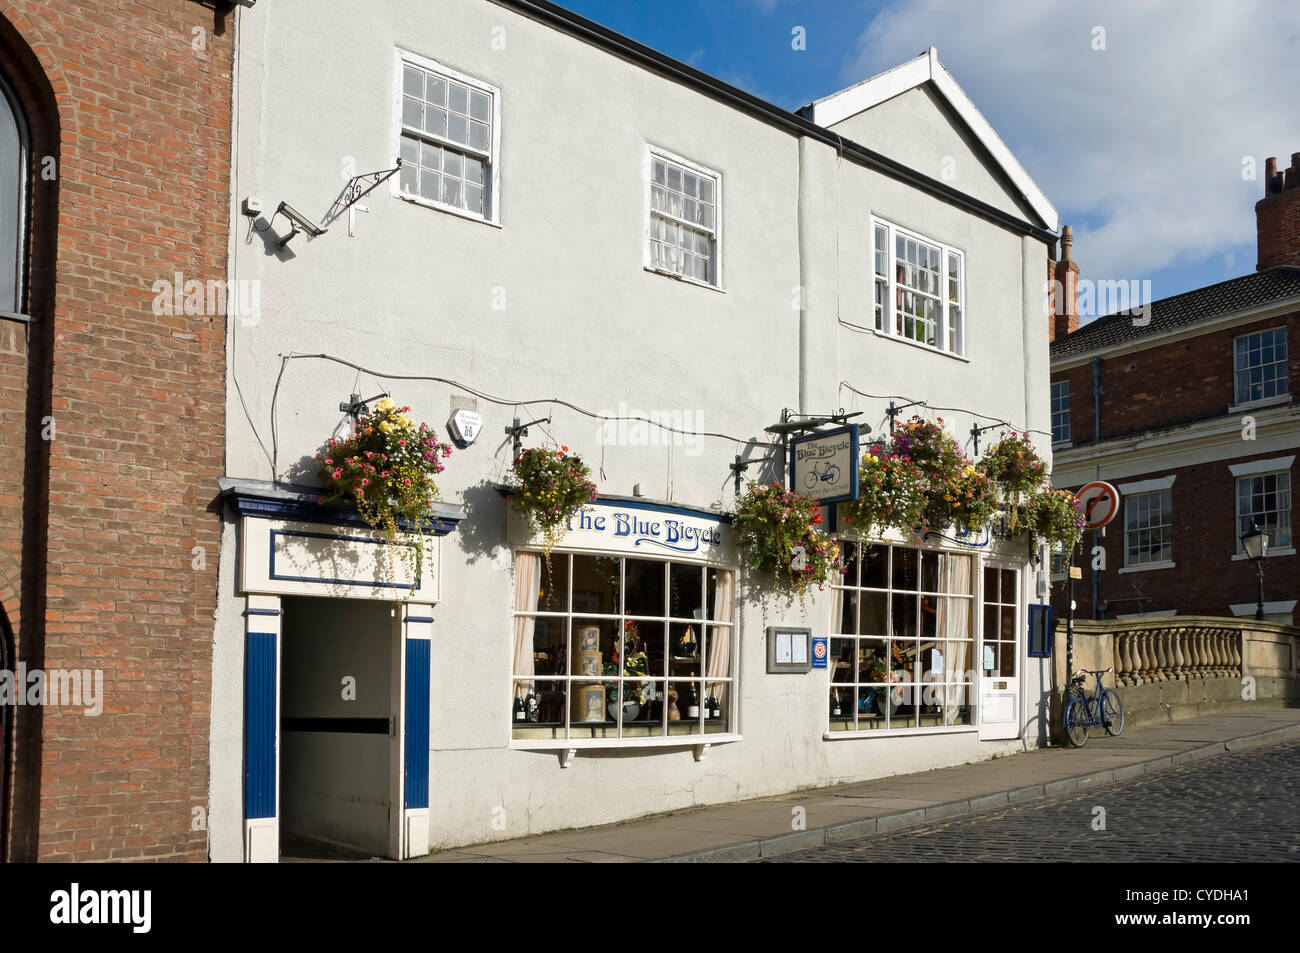 The Blue Bicycle restaurant Fossgate York North Yorkshire England UK United Kingdom GB Great Britain - Stock Image